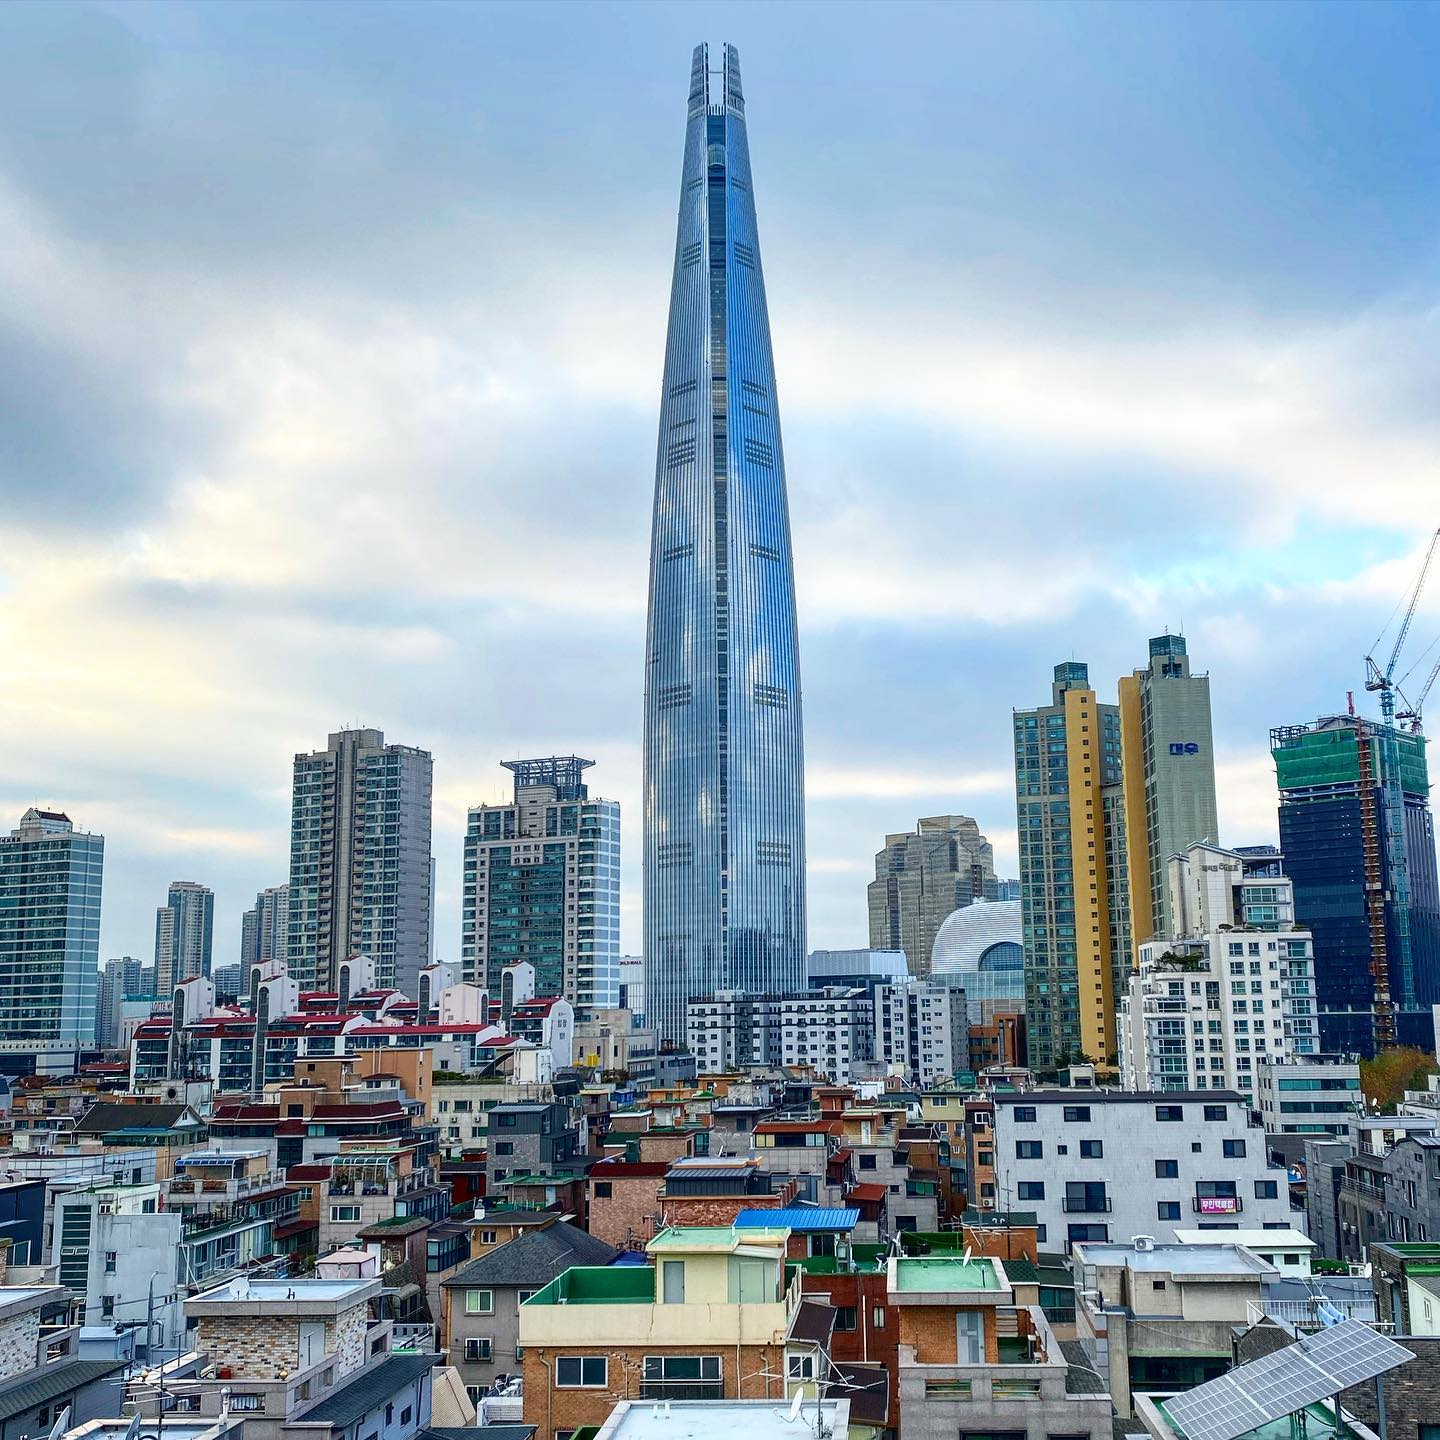 [Lotte World Tower] At 555m the Lotte Tower is South Koreas tallest building…